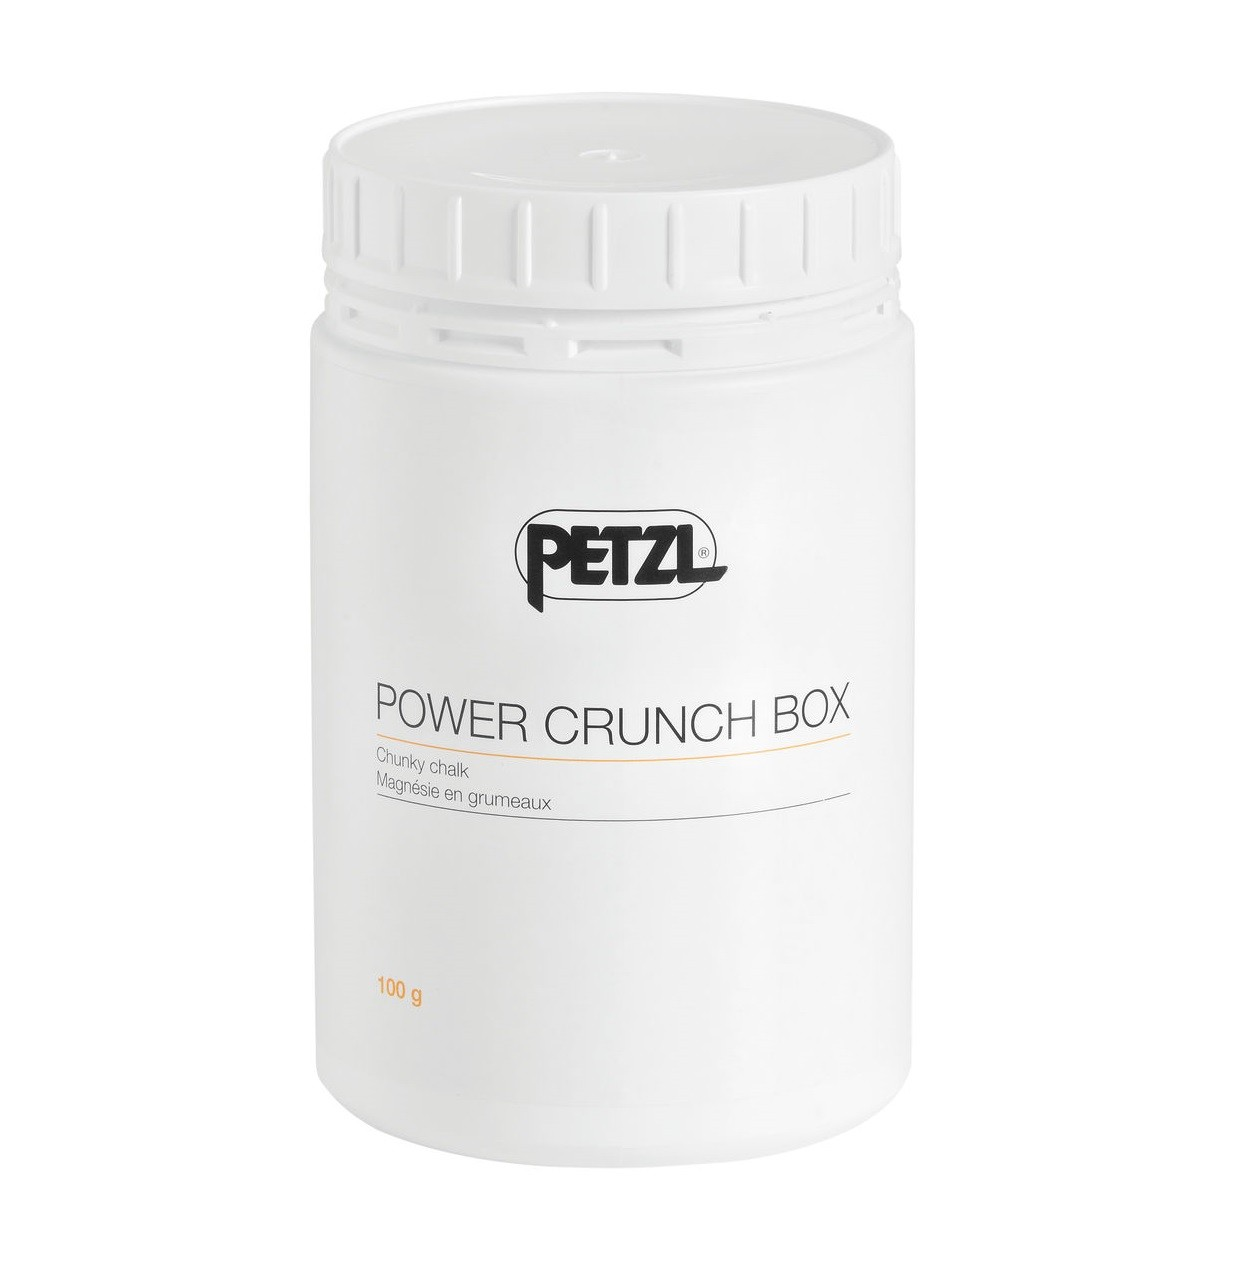 Power Crunch Box - Magnésio para Escalada e Crossfit com Caixa 100 g Petzl